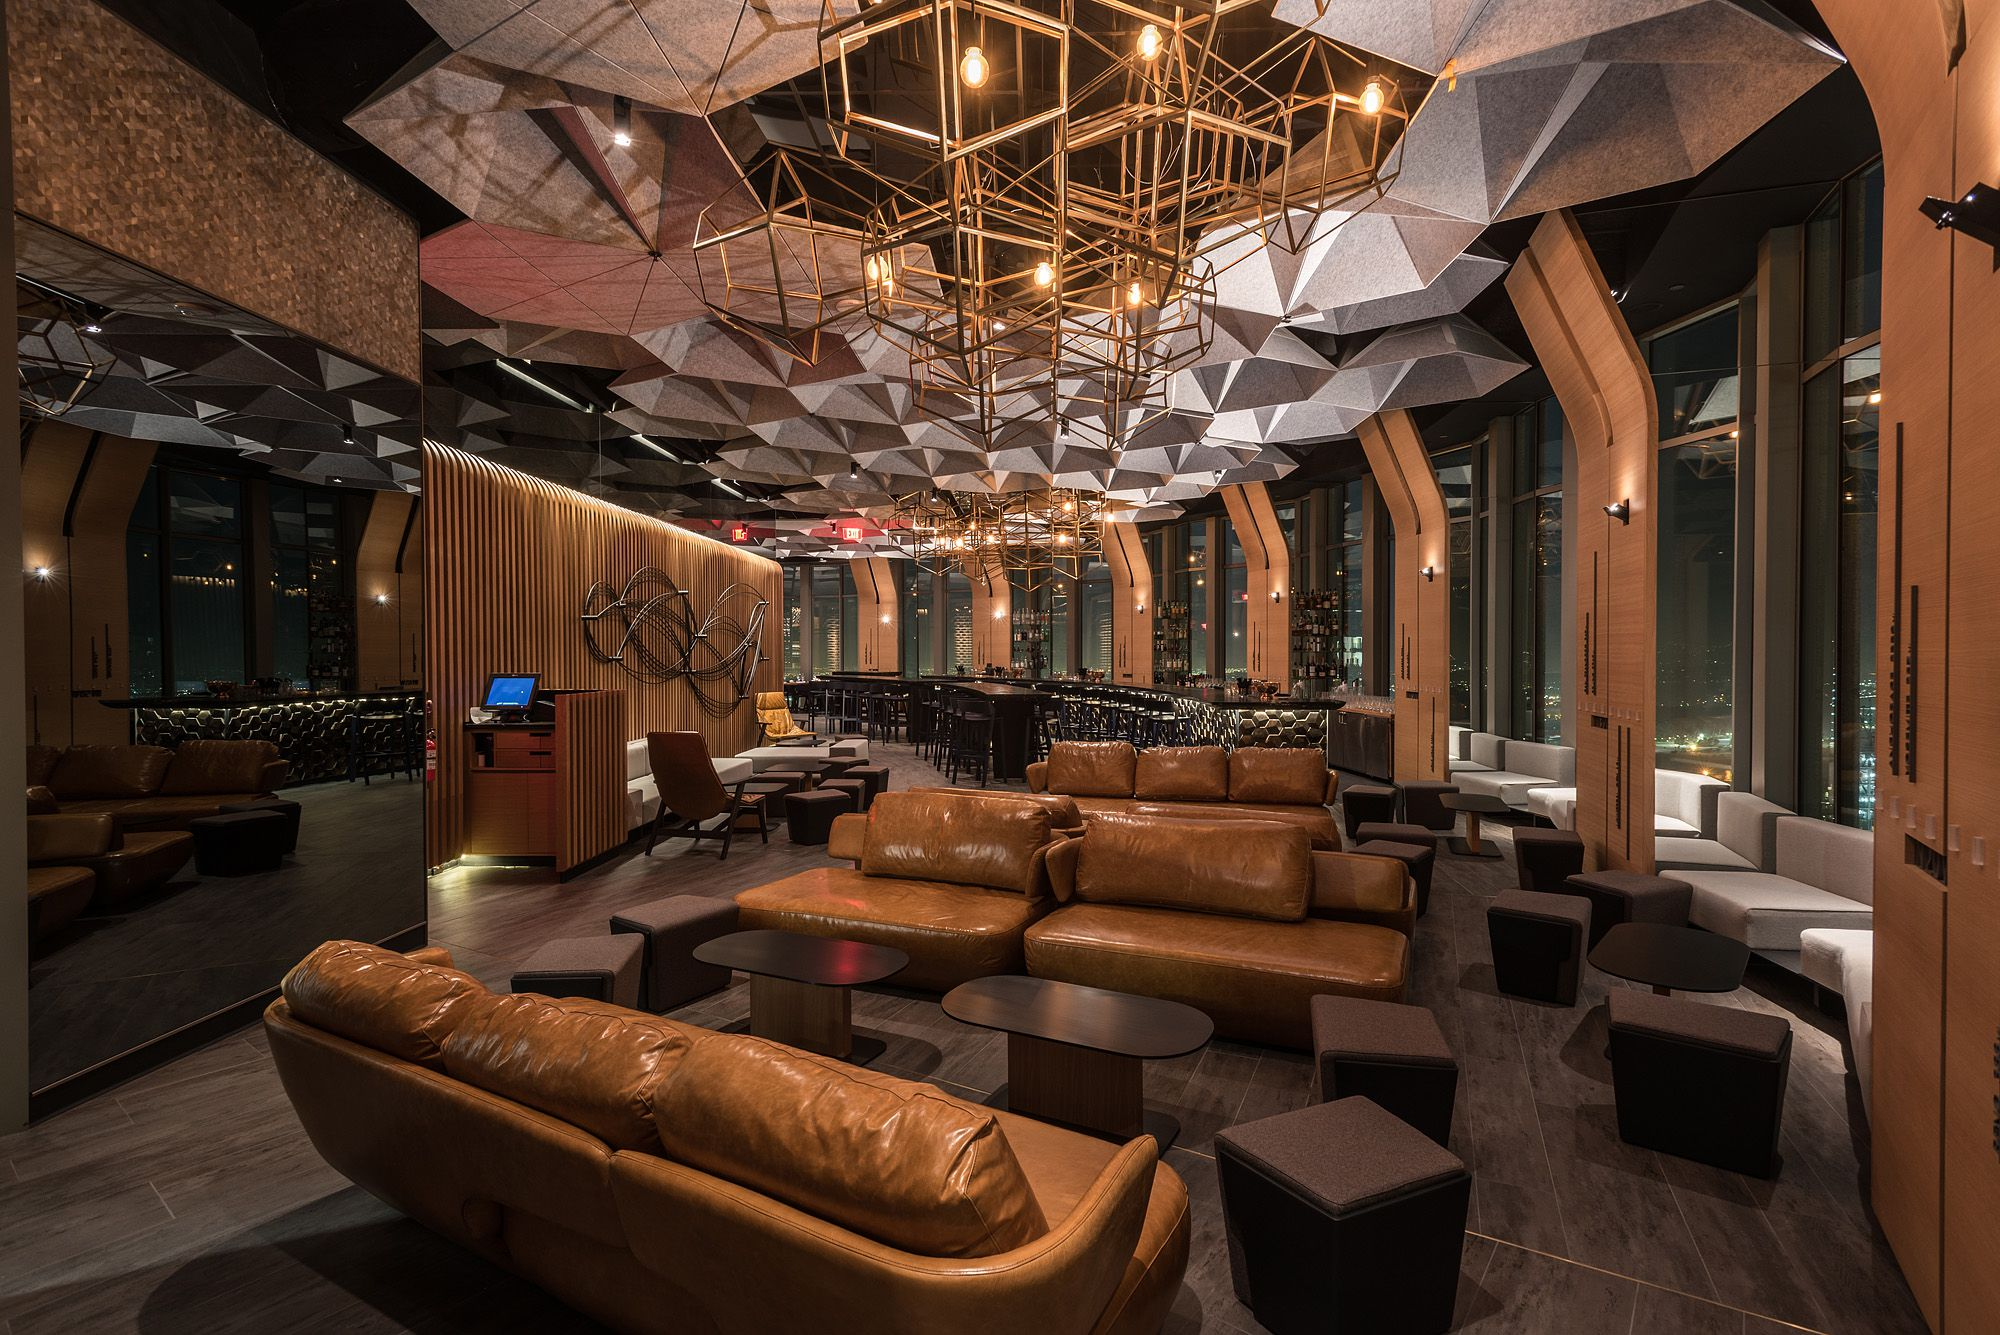 modern sofa tables cheap source primos pa 71above ushers in downtown's golden age - eater la